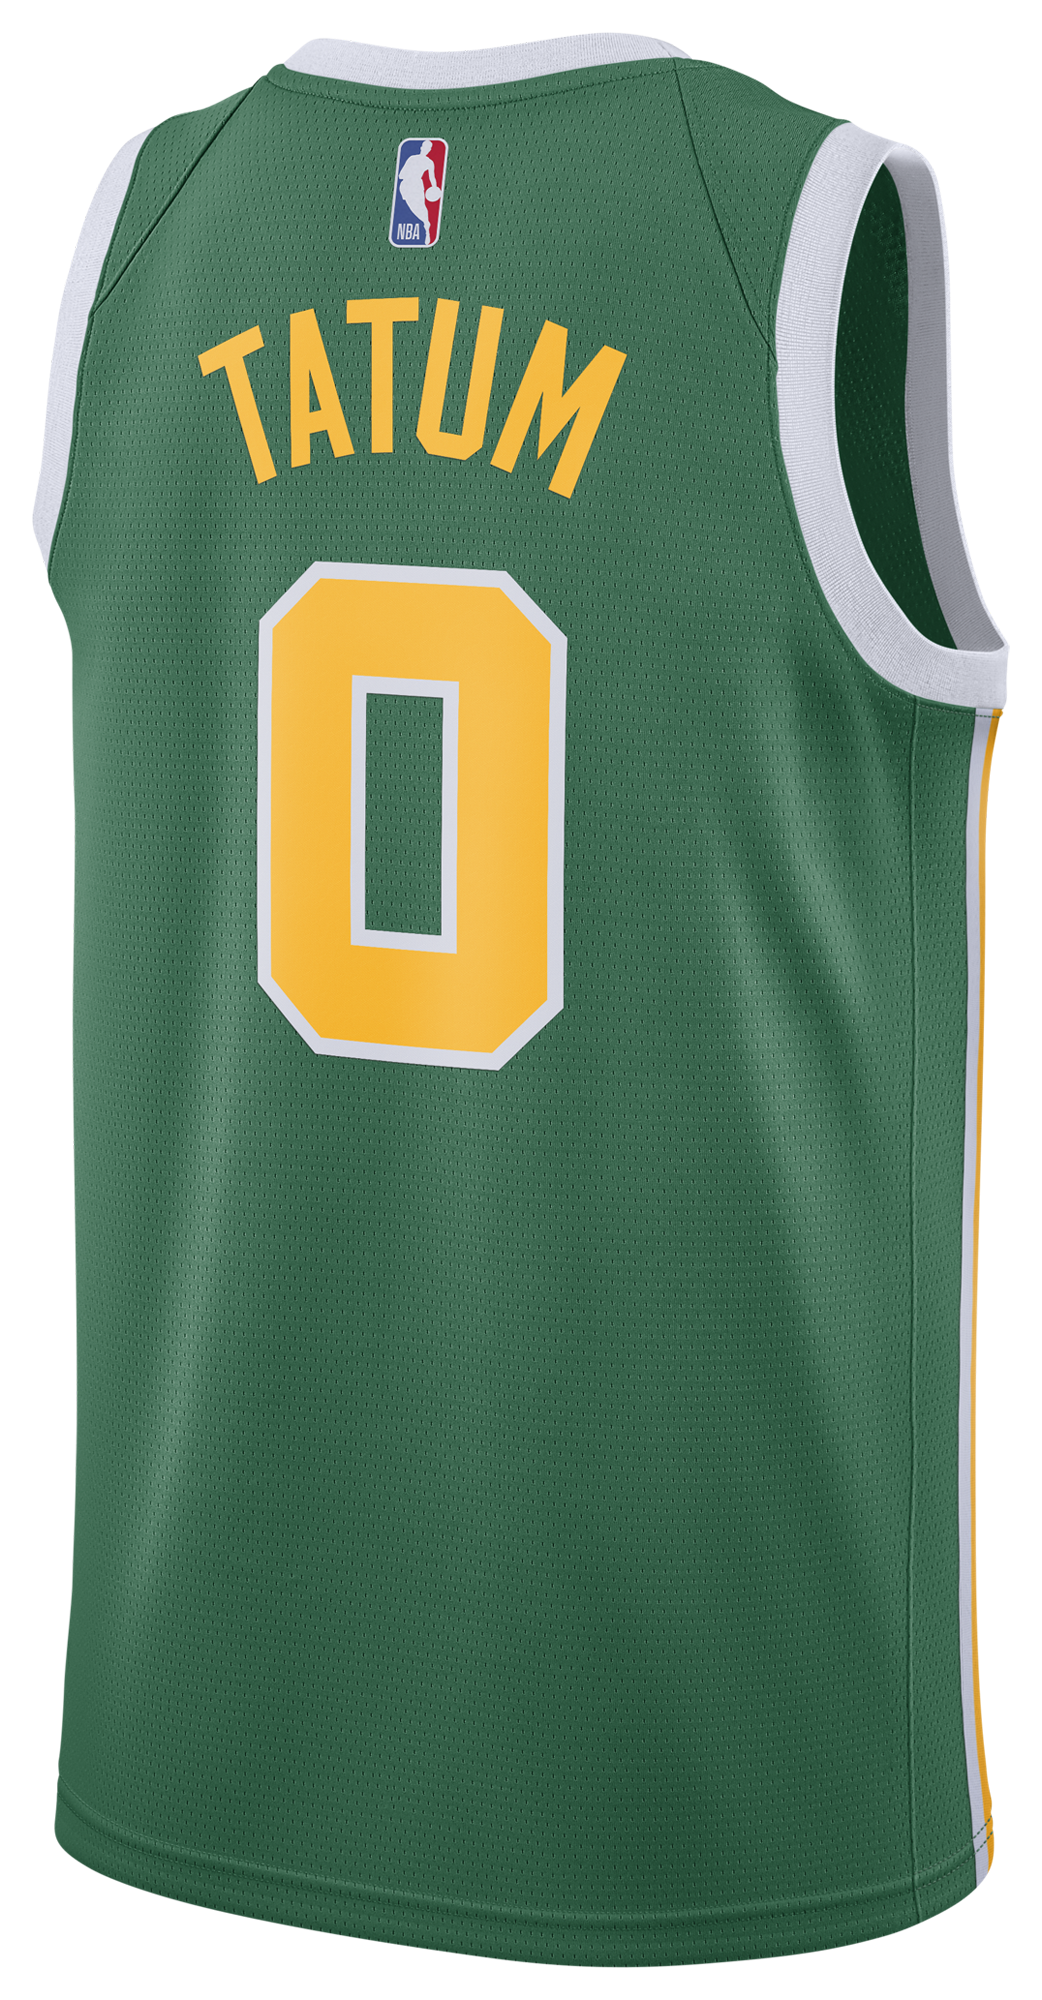 new product 2c461 f9702 Nike NBA Earned Edition Name & Number Jersey - Men's ...